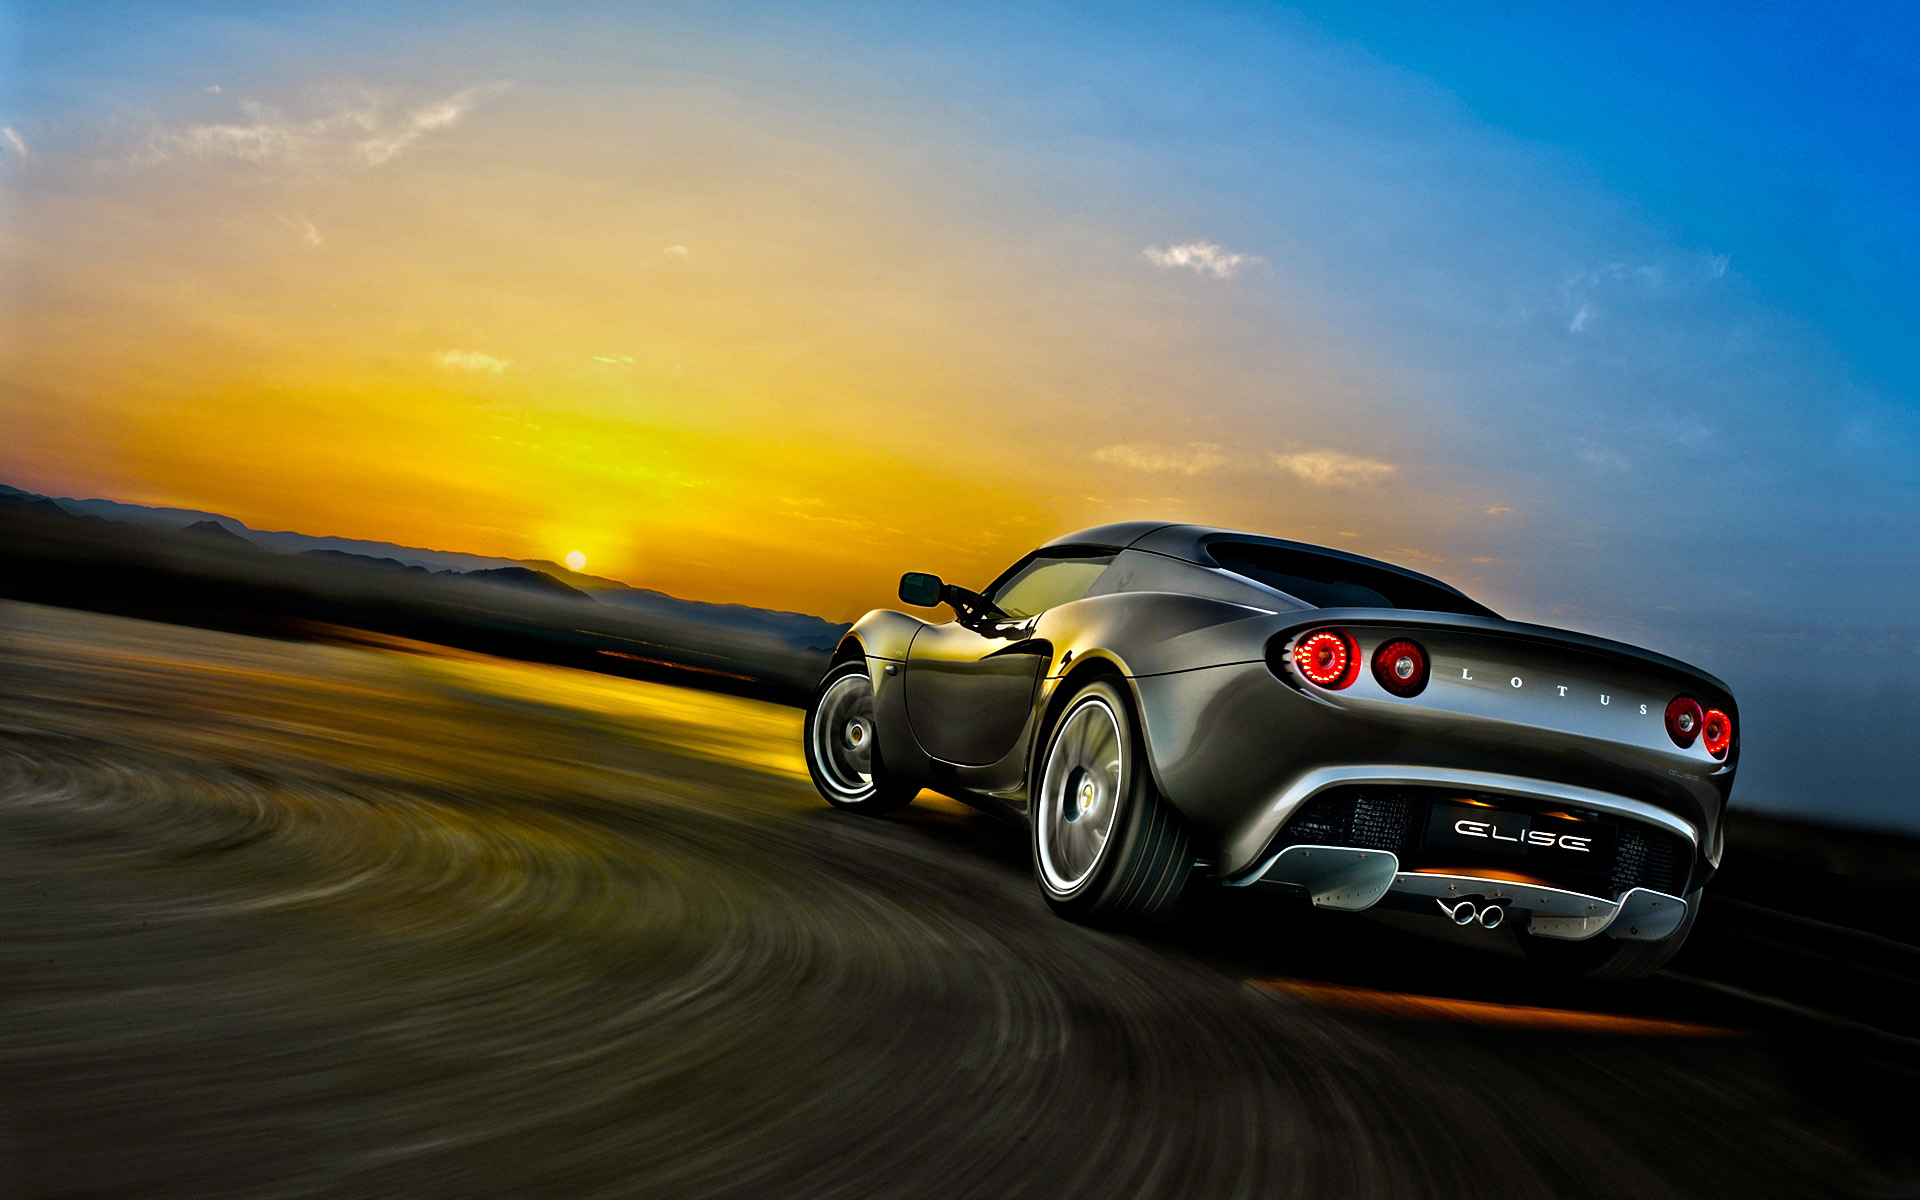 Awesome Lotus Elise Wallpaper